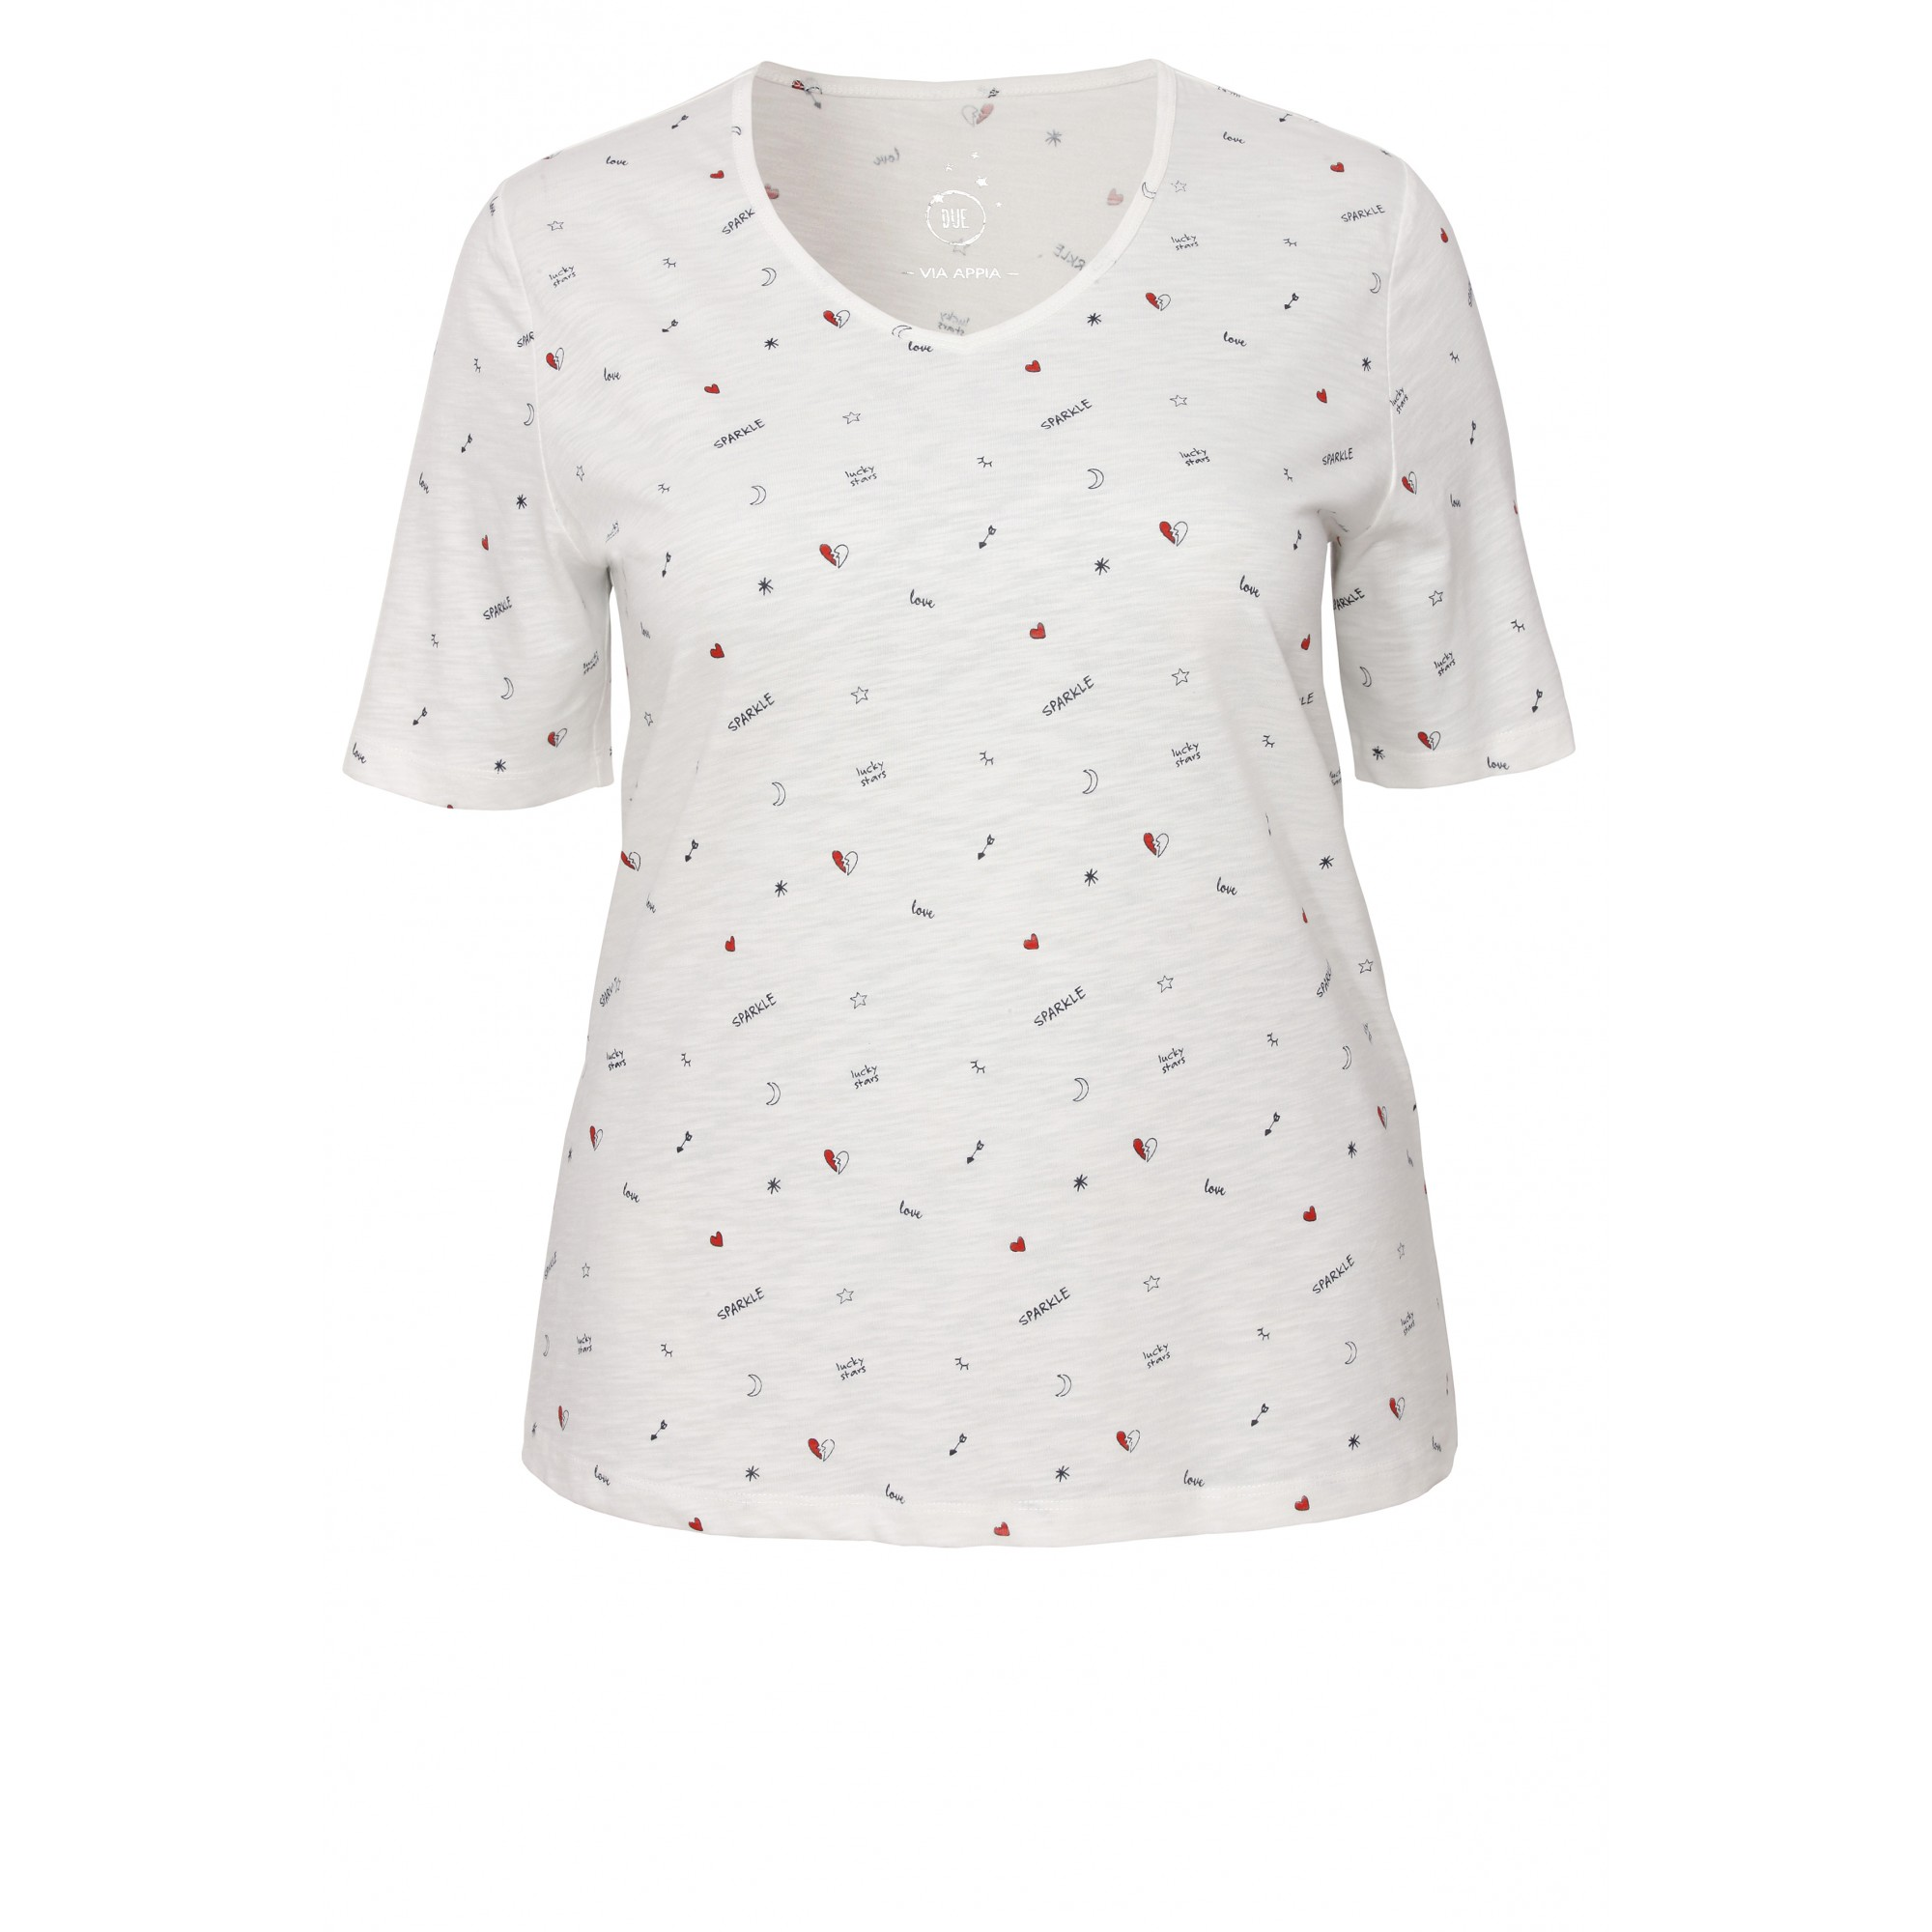 Leichtes T-Shirt mit Galaxis-Muster